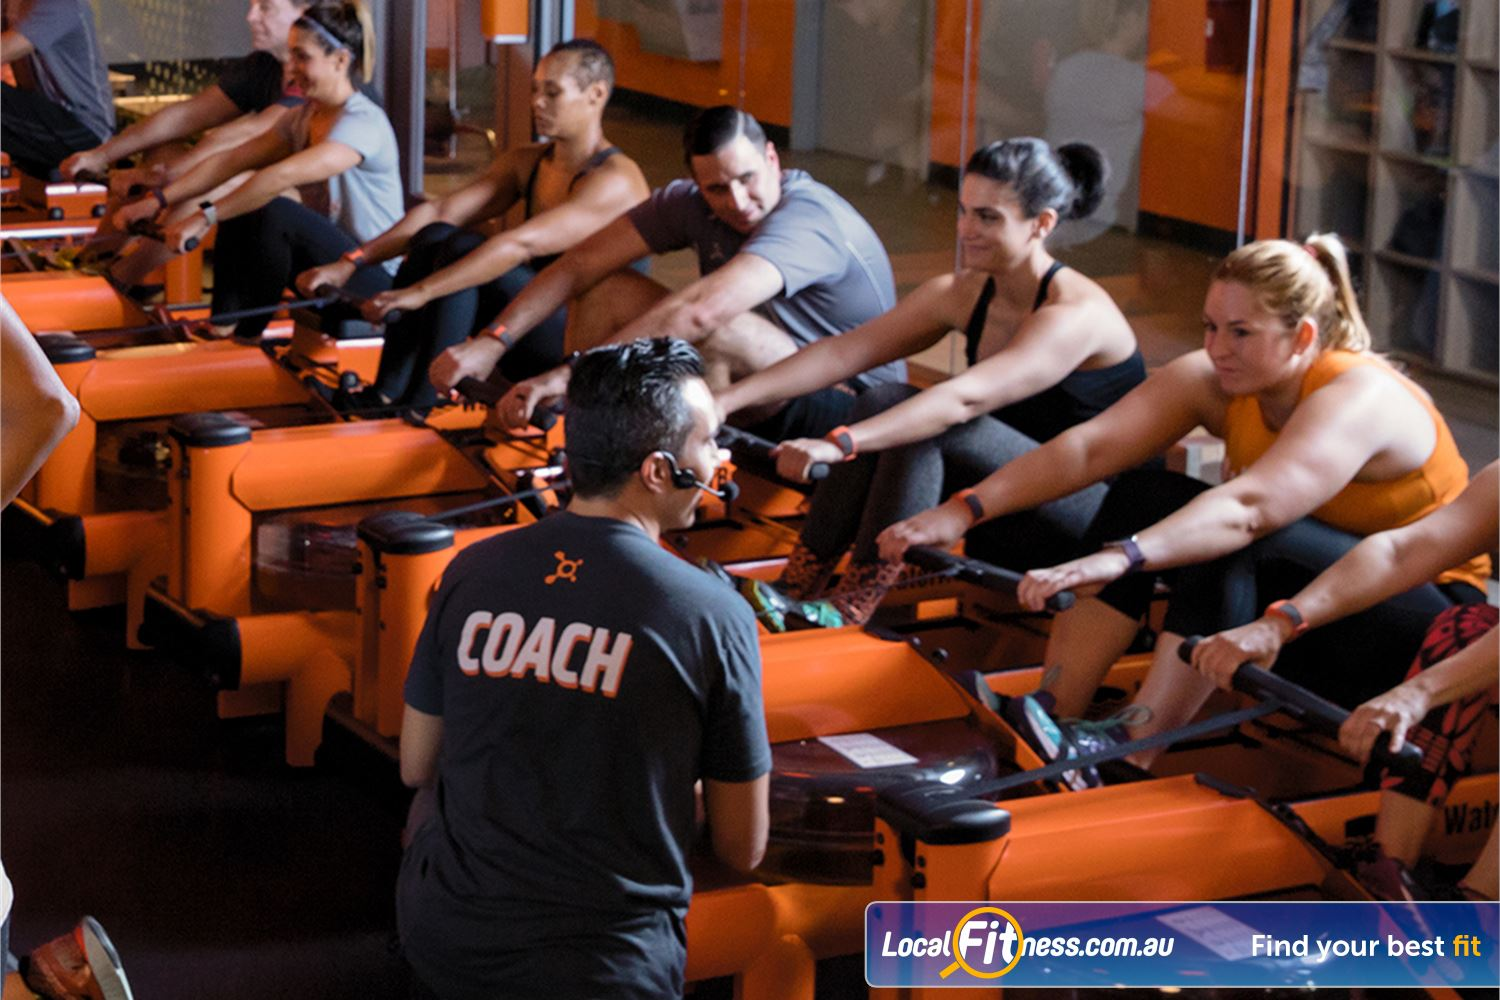 Orangetheory Fitness Near Hawthorn East Group workout with the attention of an experienced personal coach.